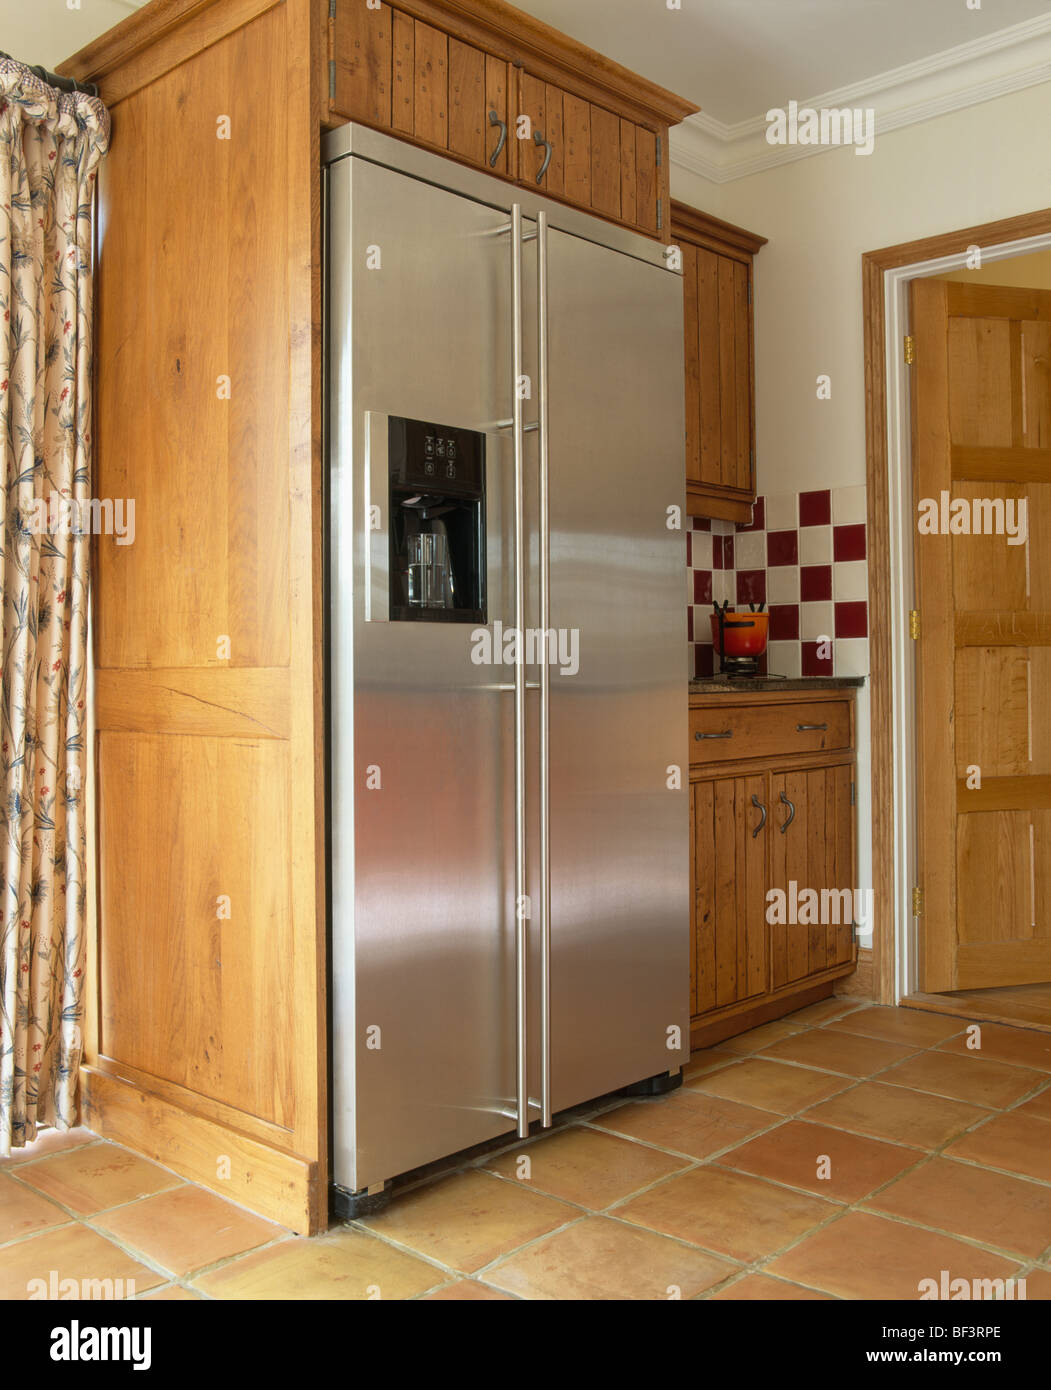 Large American Fridge Freezer Part - 35: Large Stainless Steel American-style Fridge Freezer In Fitted Unit In  Traditional Kitchen